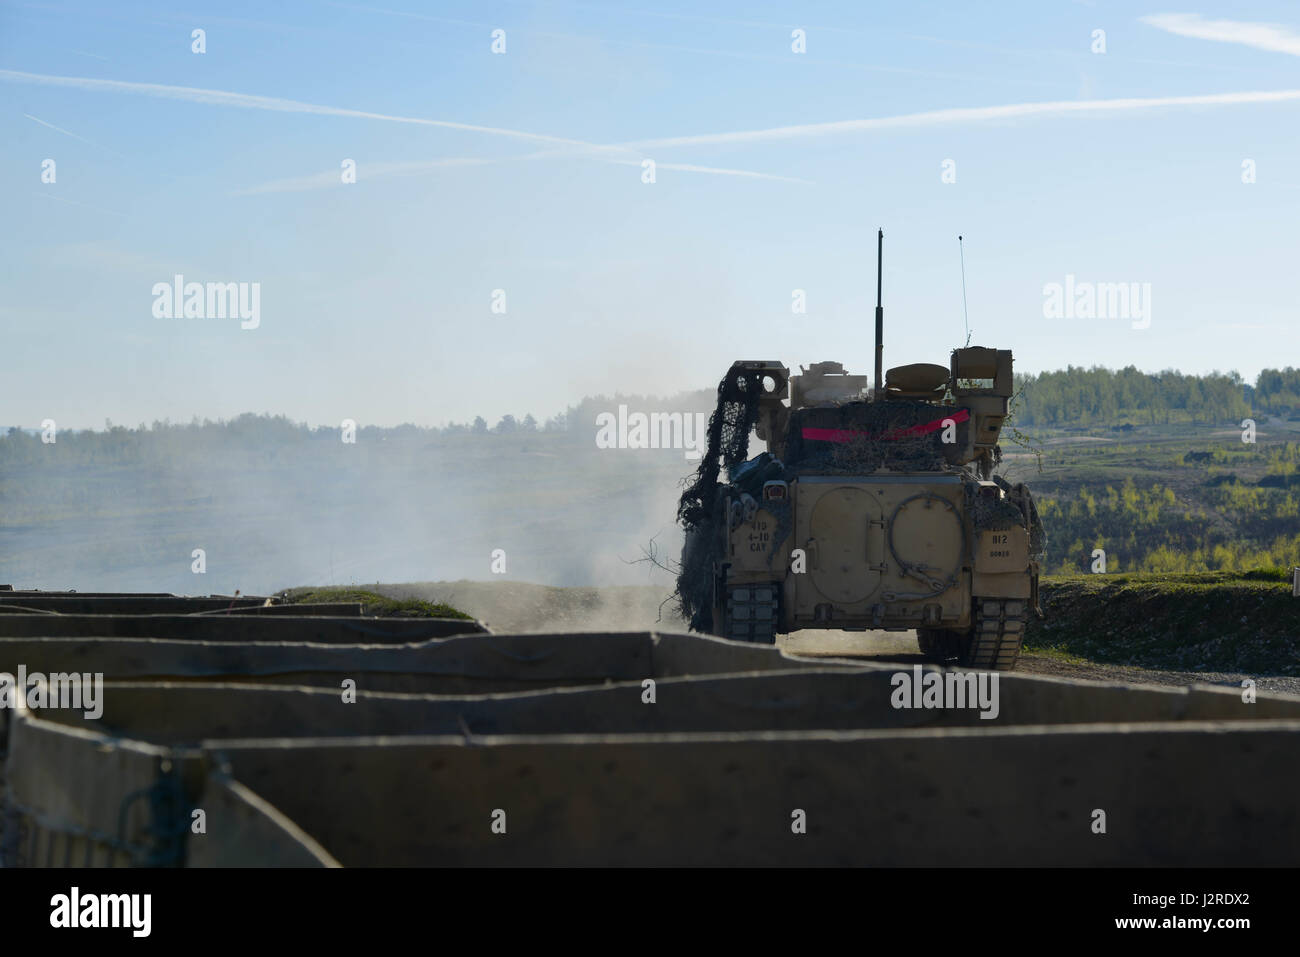 U.S. Soldiers of 4th squadron, 10th Cavalry Regiment, 3rd Armored Brigade Combat Team, 4th Infantry Division fire - Stock Image